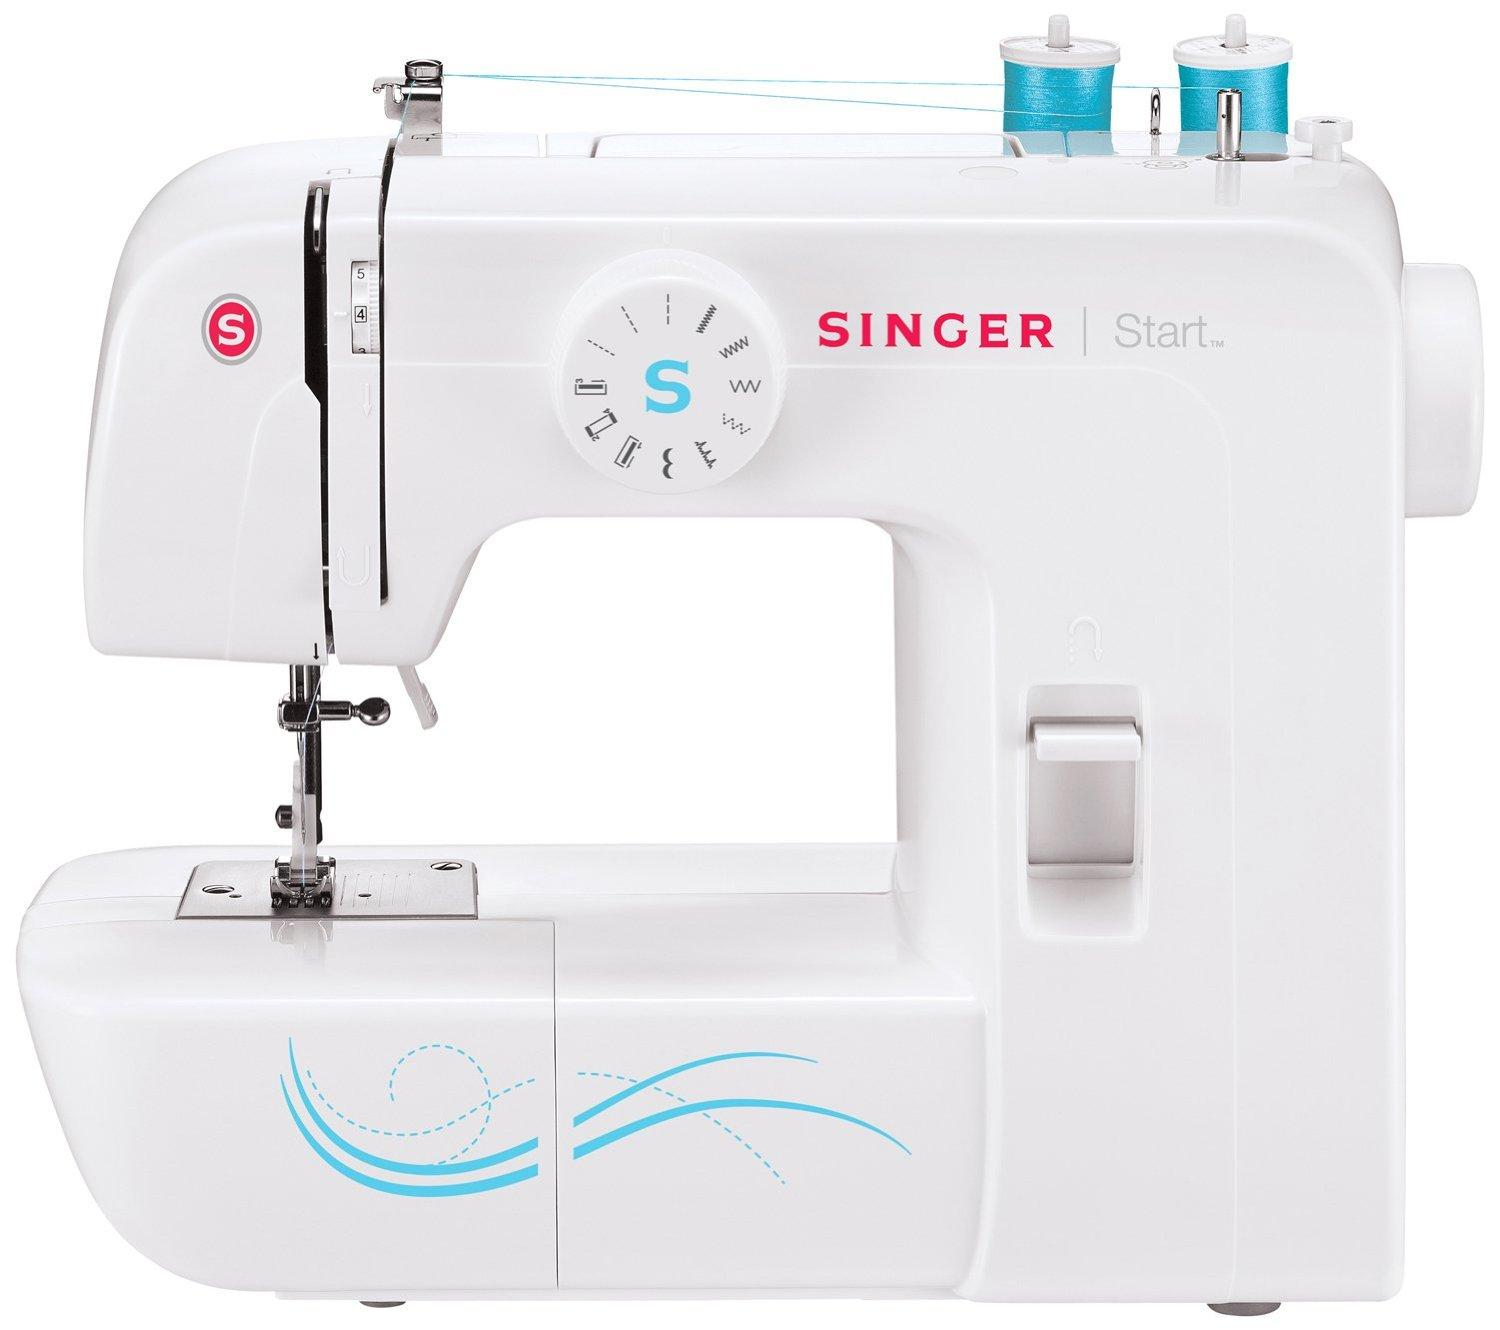 #1 New Release in Sewing Machines SINGER 1304 Start Basic Everyday Free Arm Sewing Machine